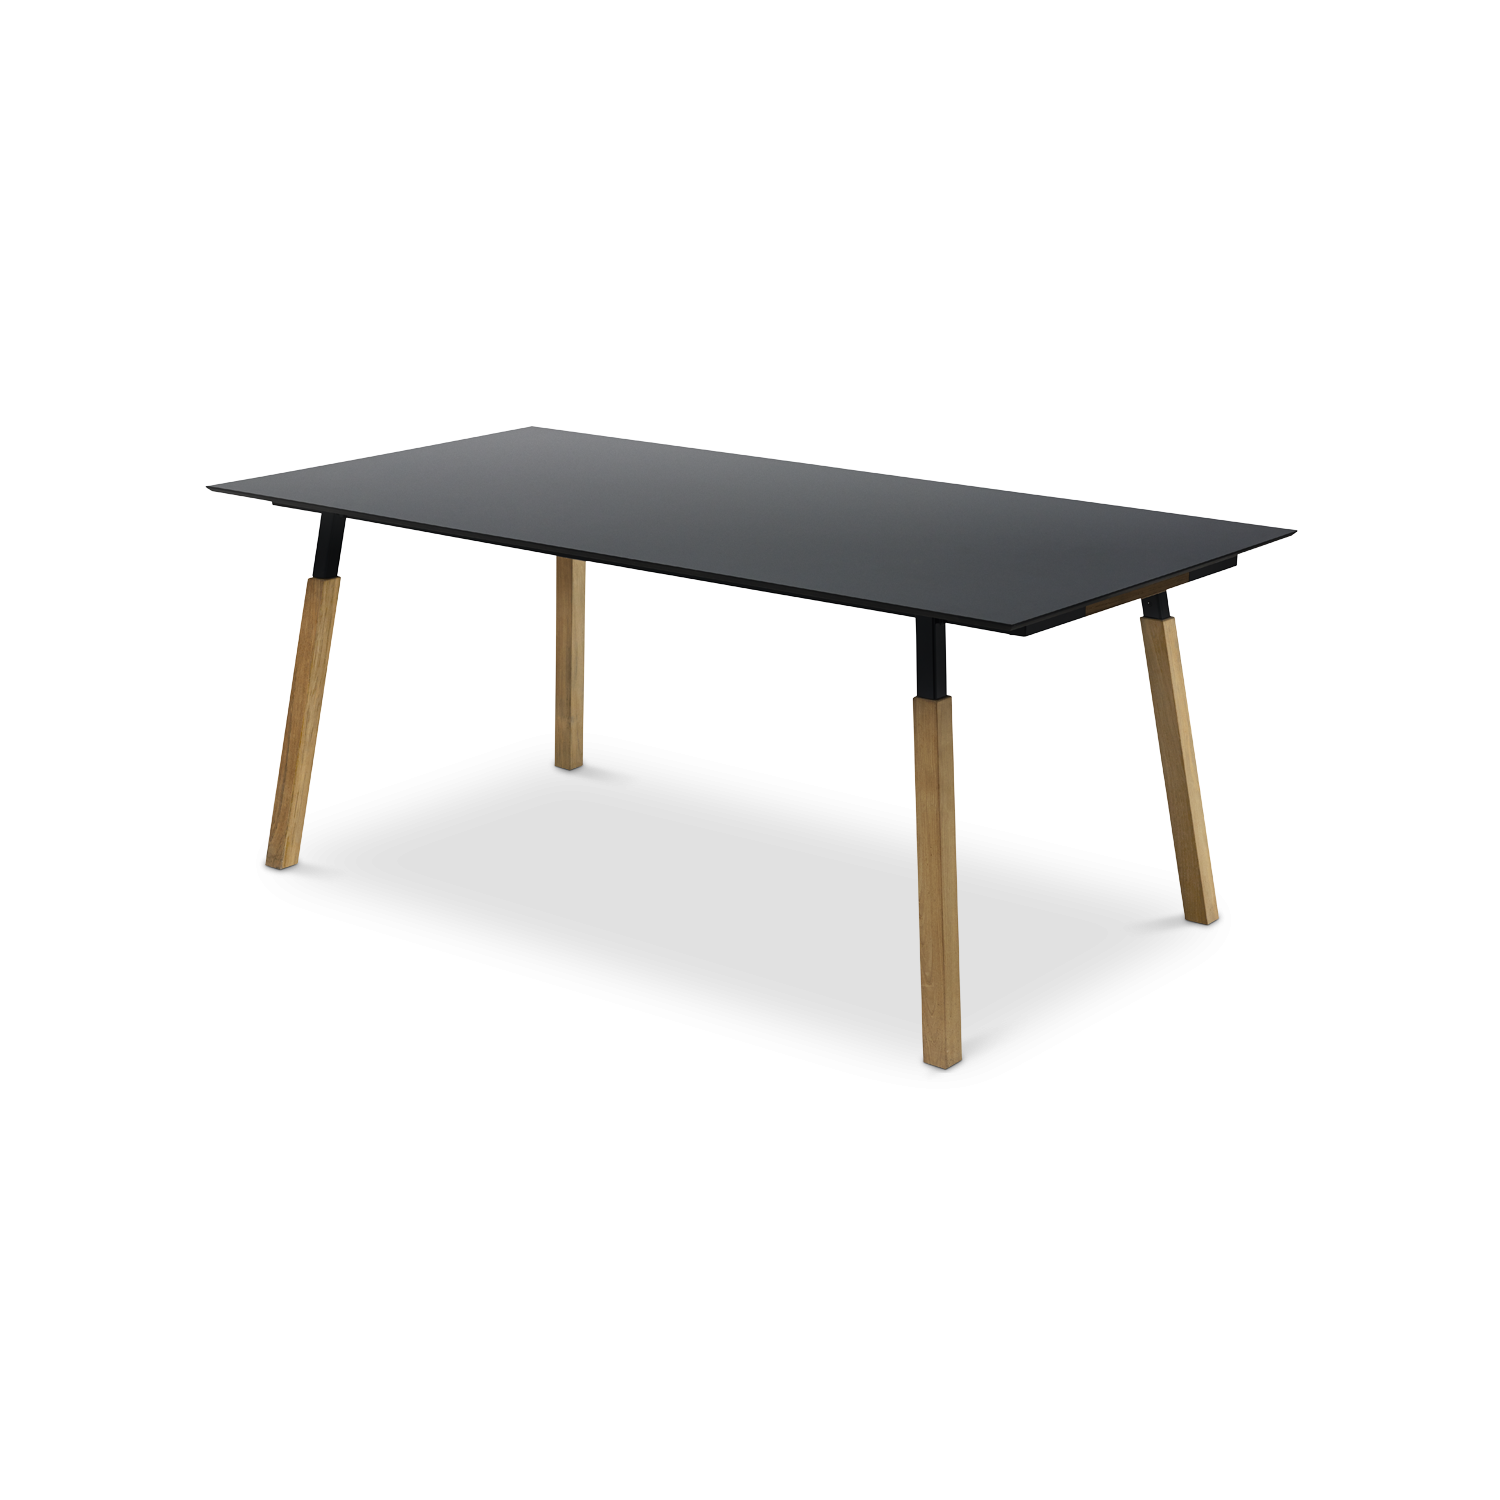 way-outdoor-table-1